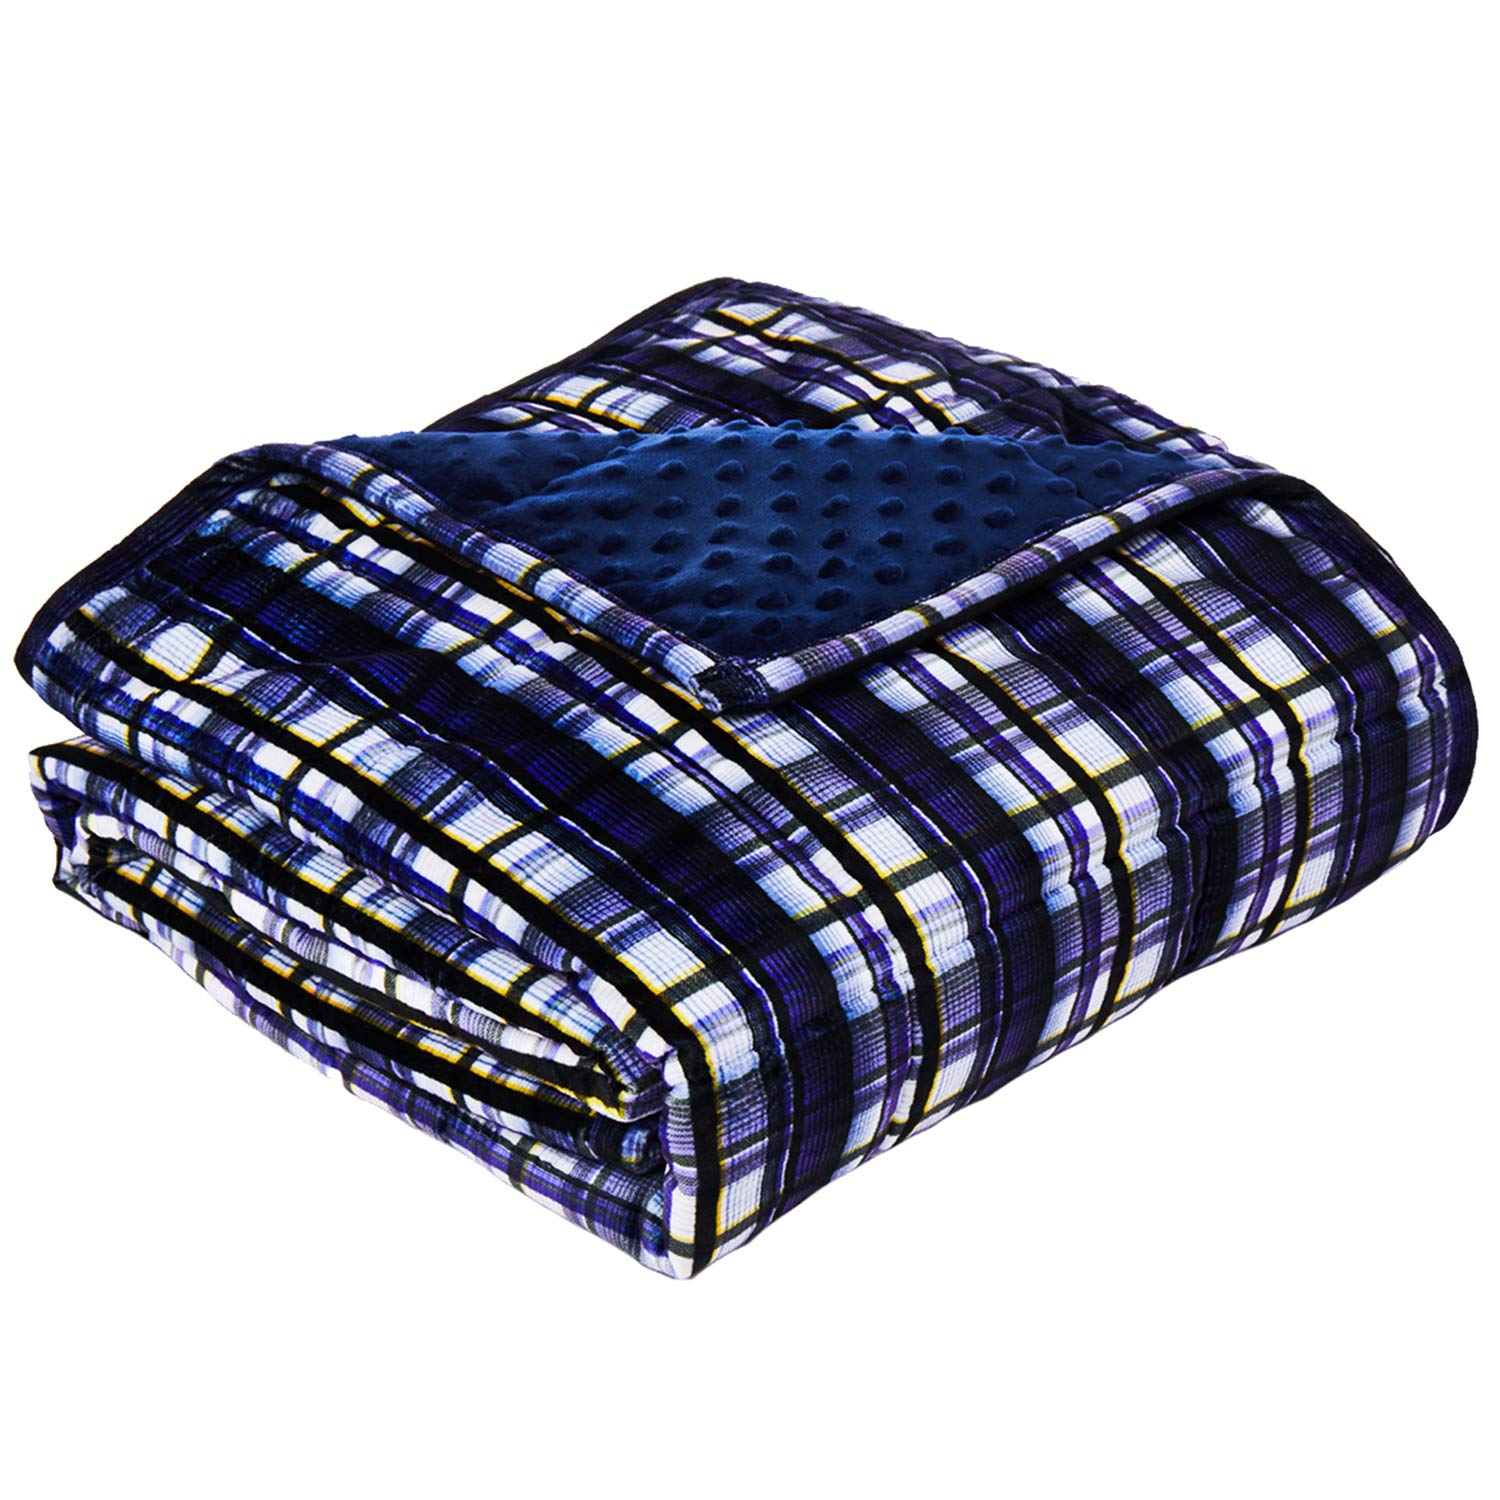 YnM Minky Weighted Blanket   15lbs, 48''x 72'', Twin Size   2.0 Fuzzy Sensory Heavy Blanket   Ultra-Soft Minky Material with Glass Beads, Navy Plaid Print & Navy Dots